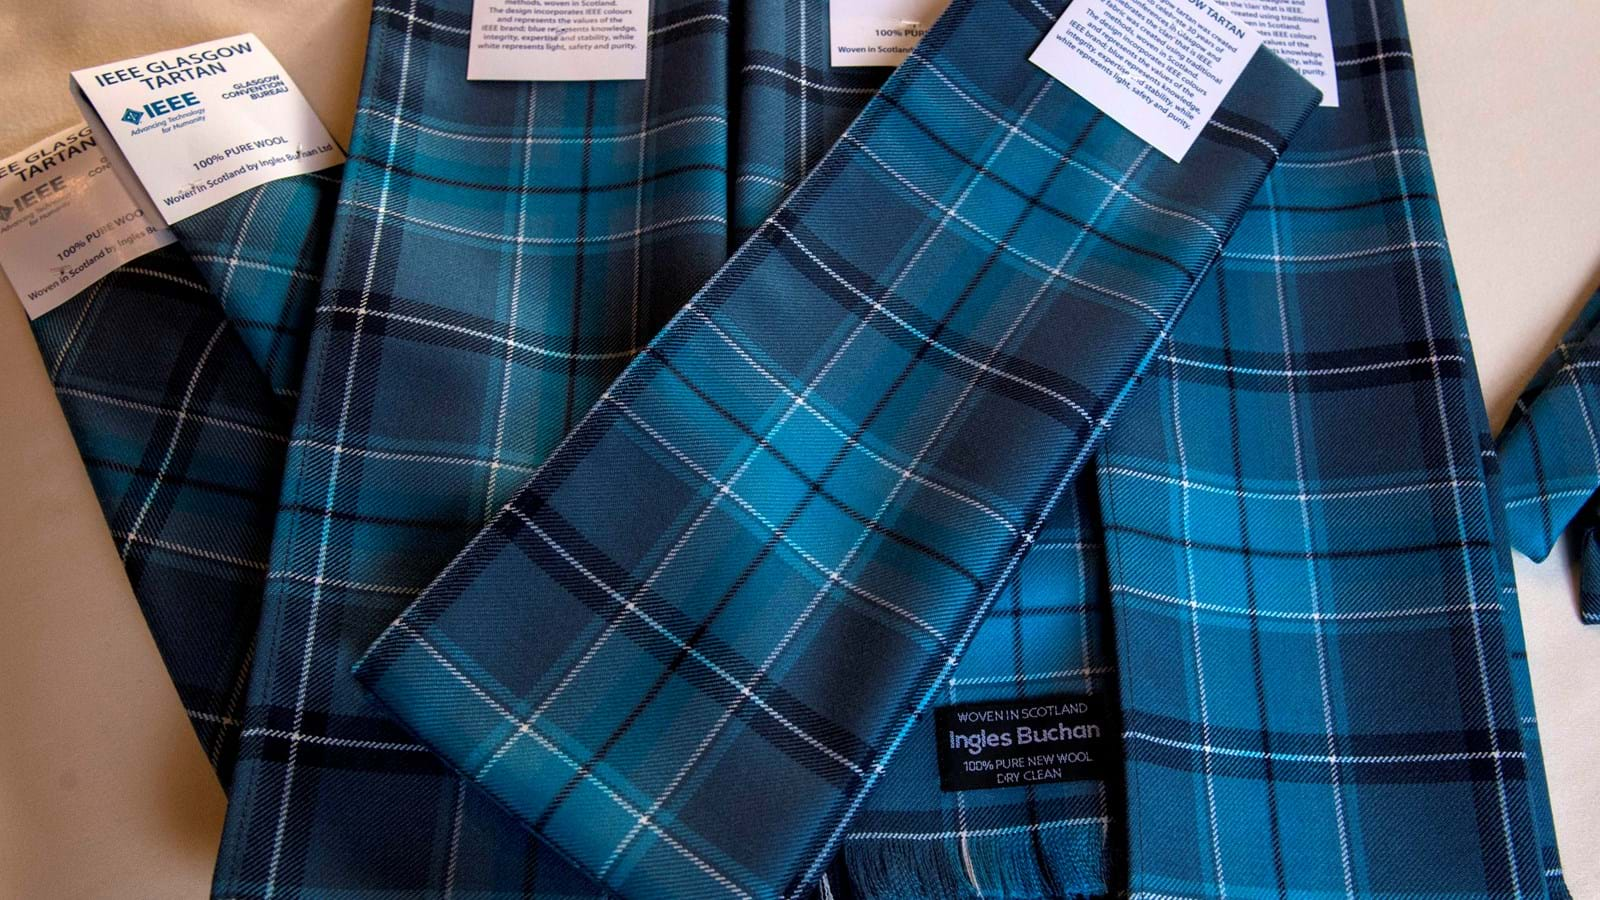 A selection of ties and sashes in the IEEE Glasgow tartan arranged on a table